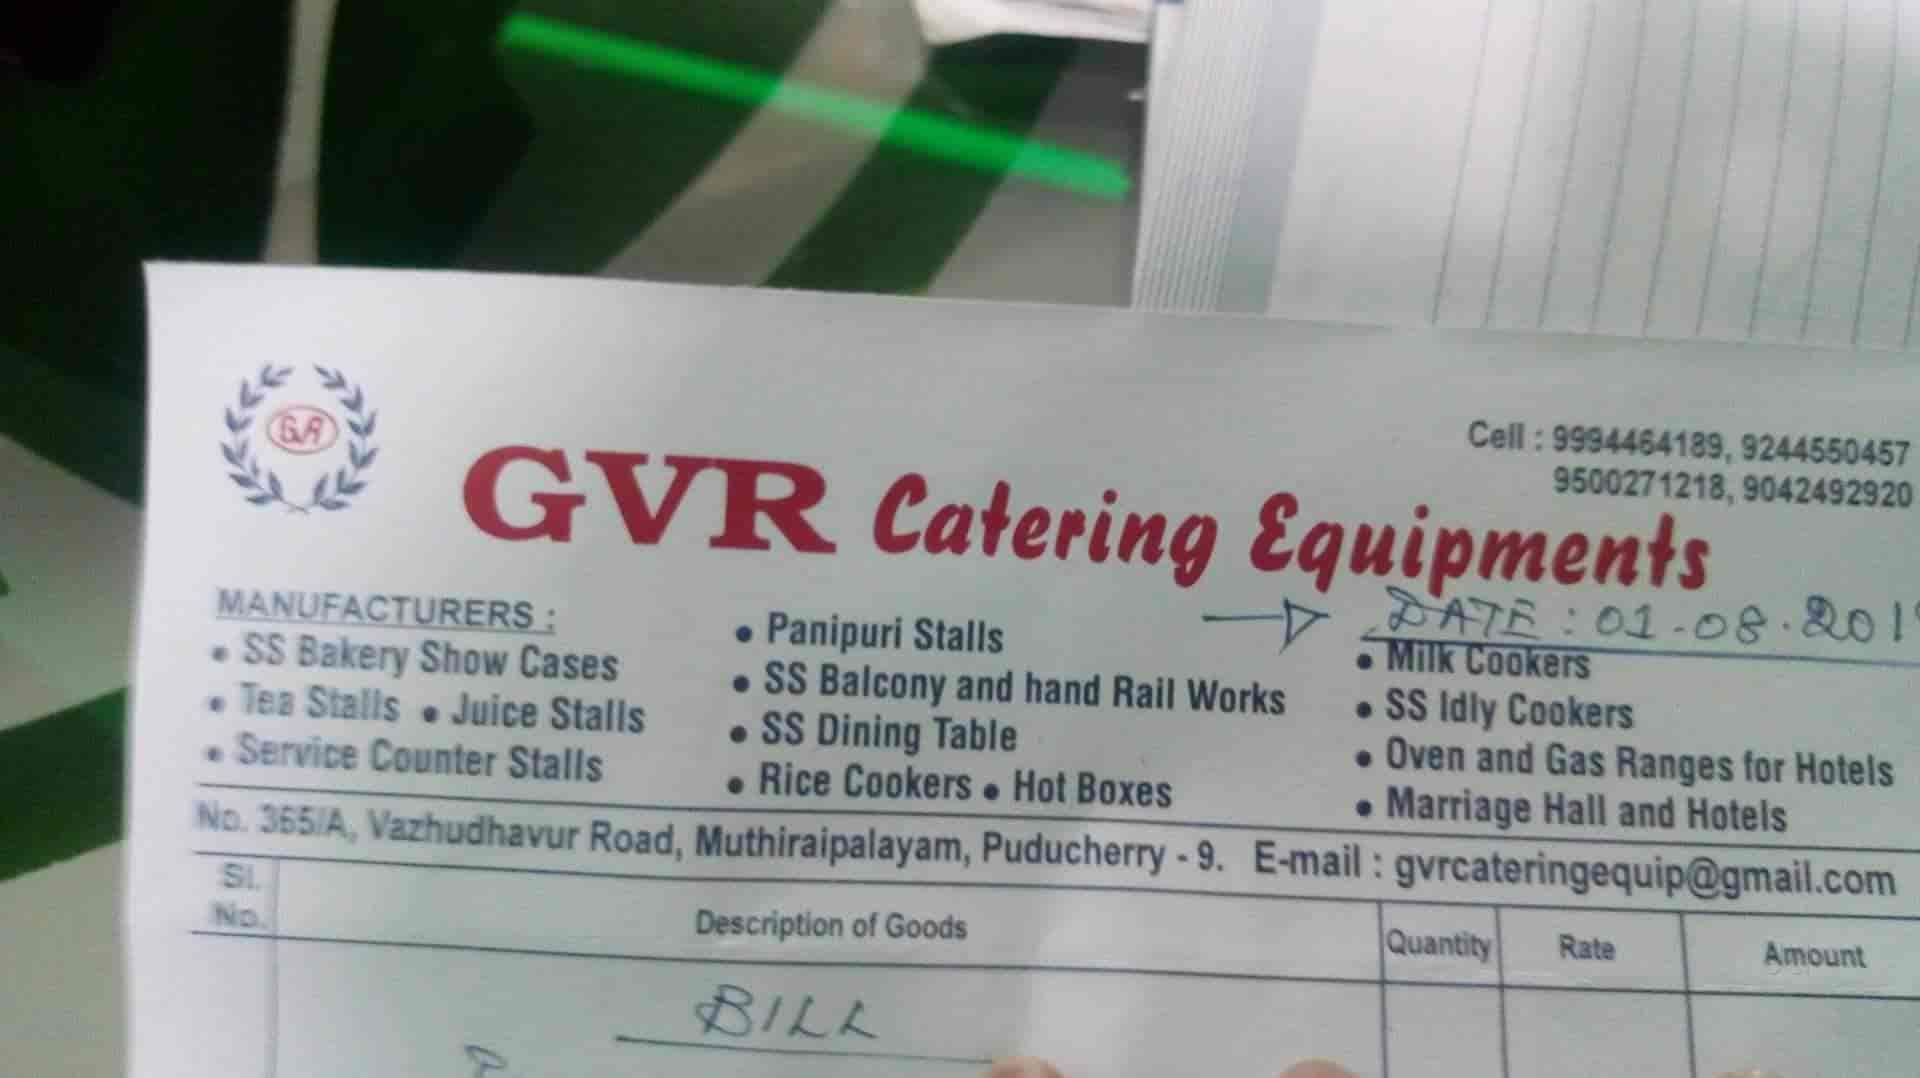 Gvr Catering Equipments, Muthirayarpalayam - Caterers in